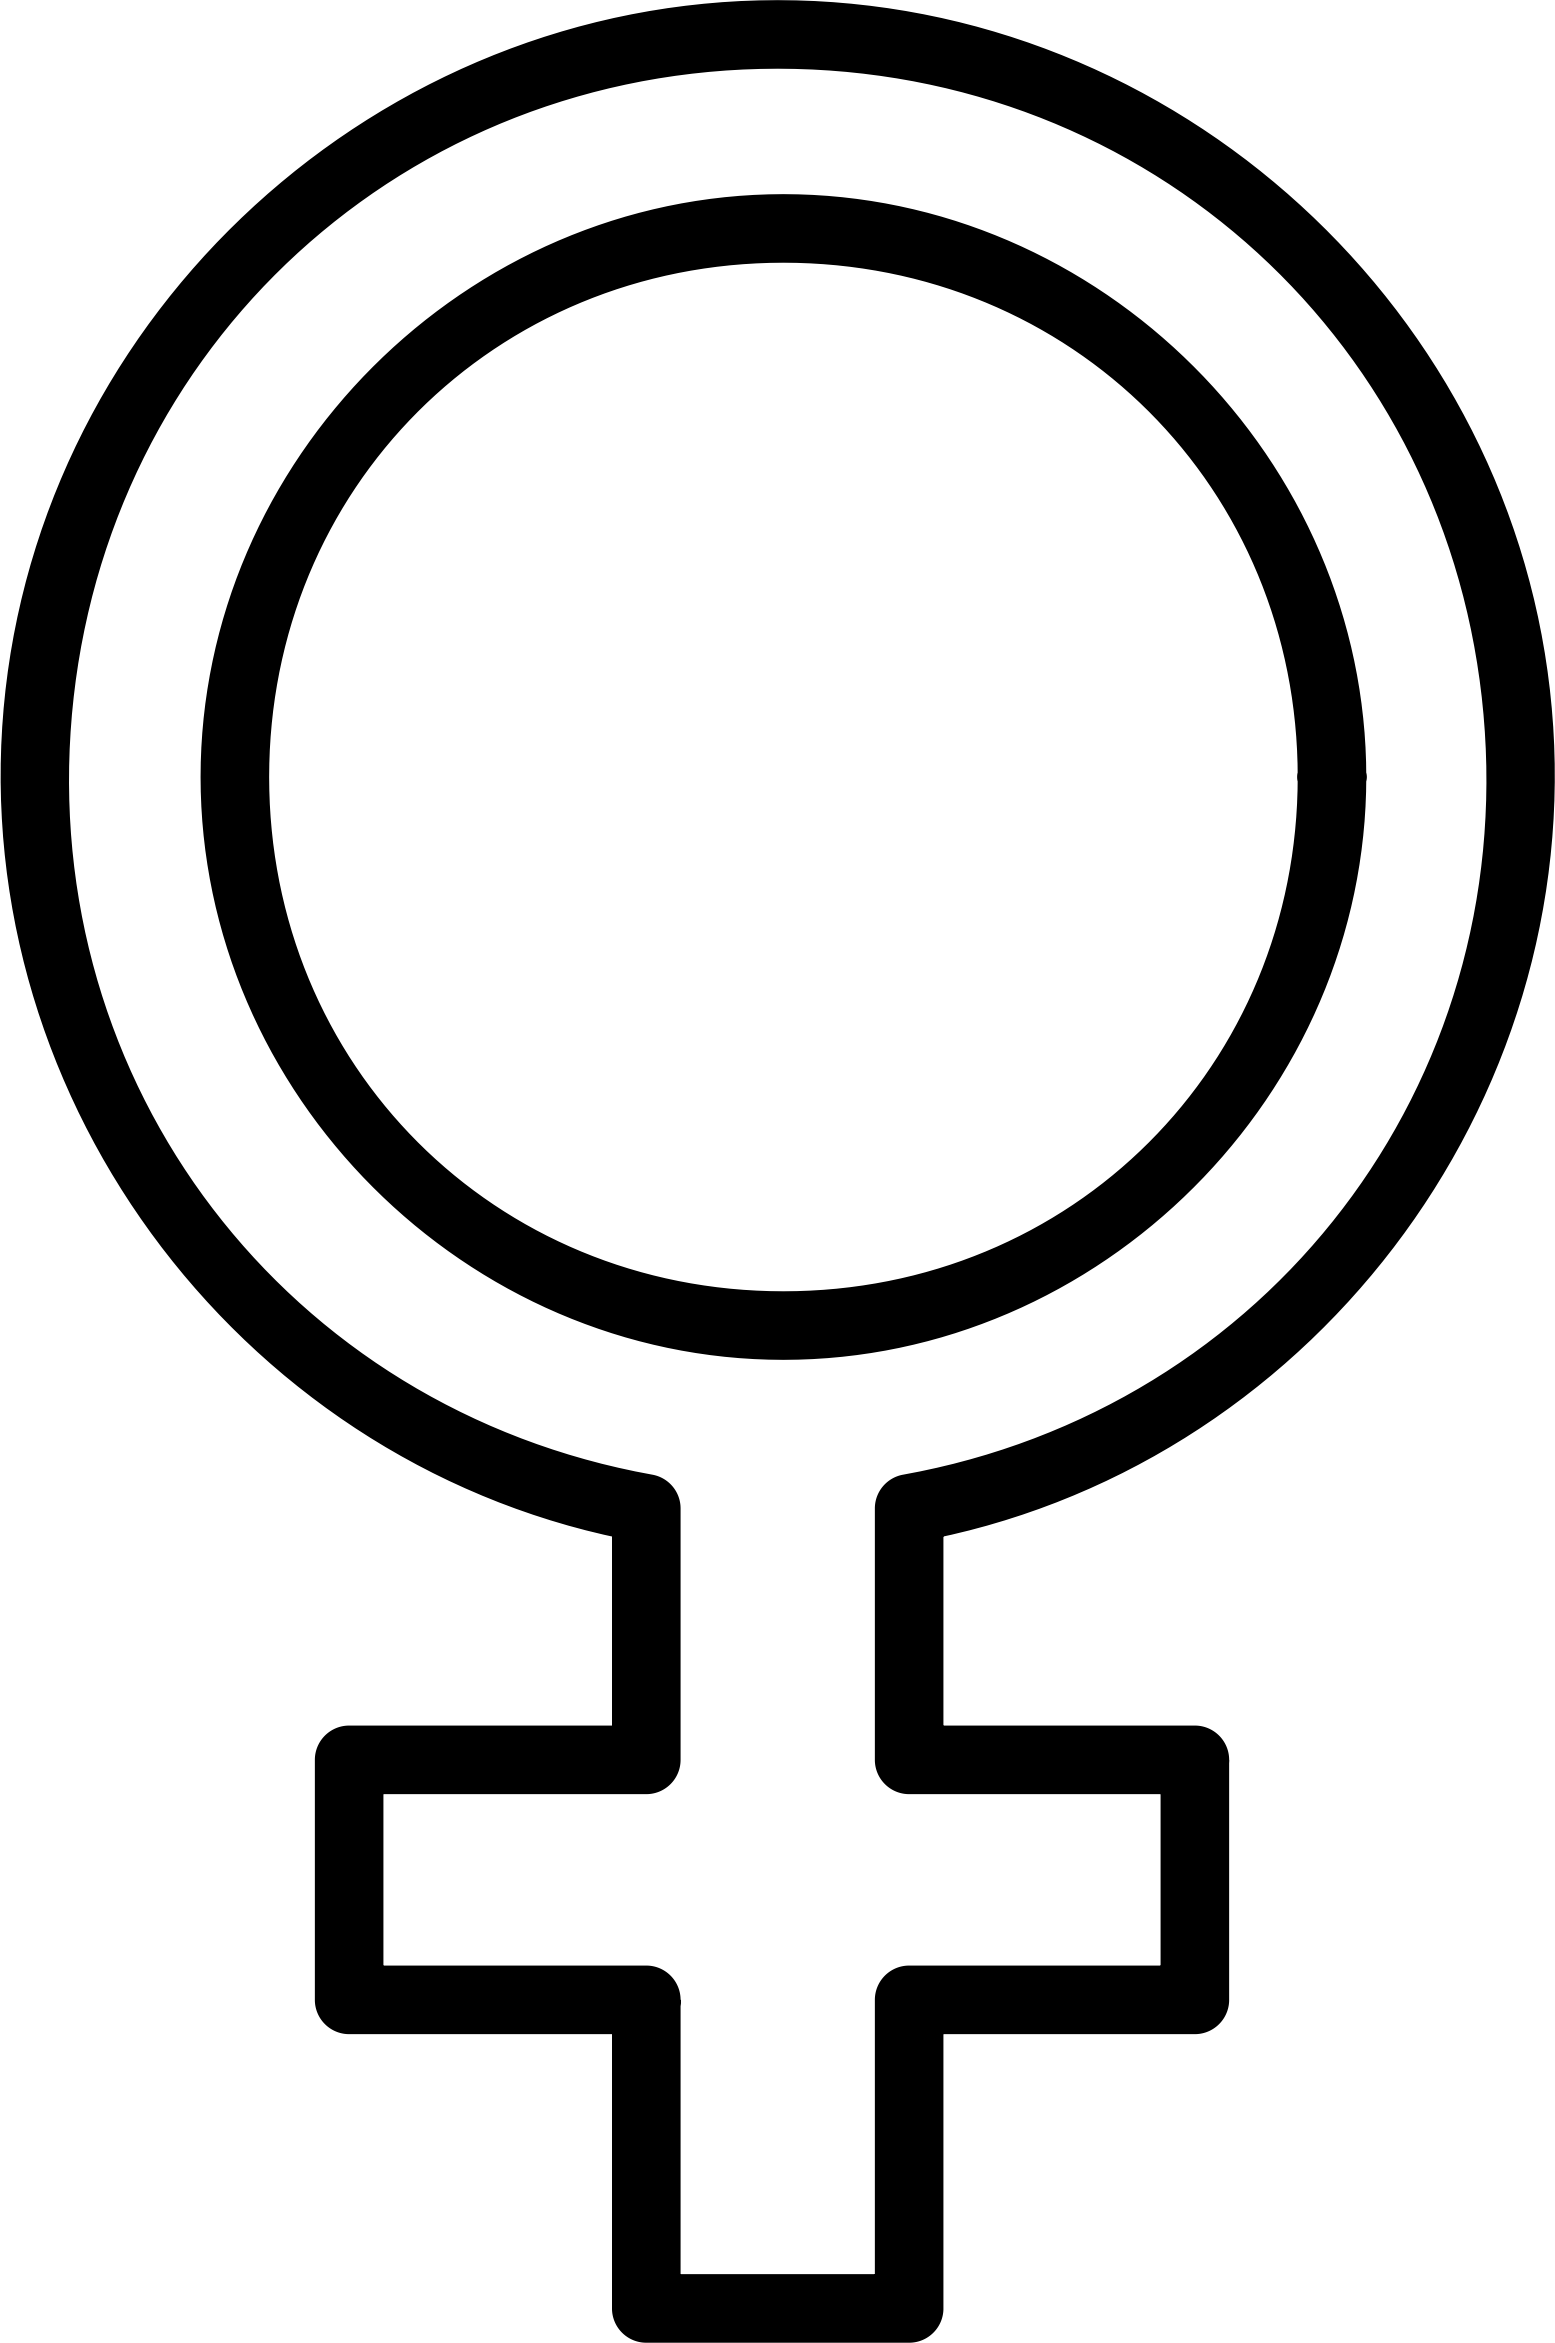 Female Symbol by kumar35885